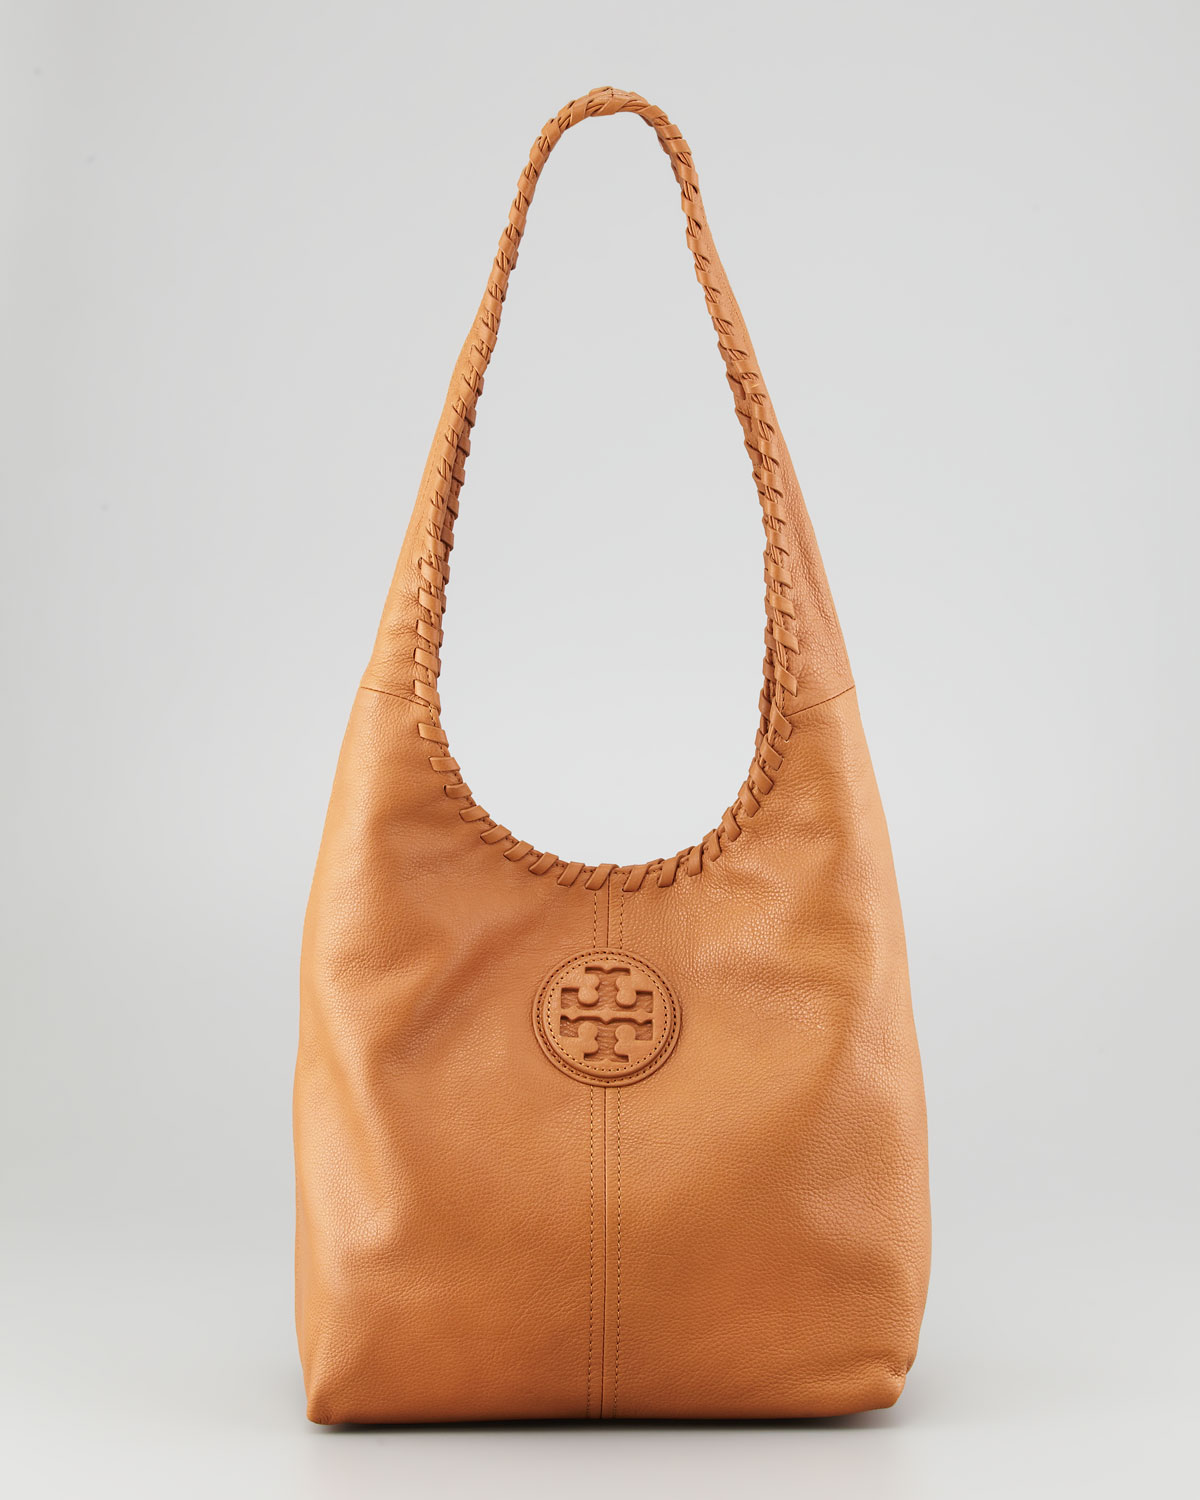 Tory burch Leather Hobo Bag in Brown | Lyst